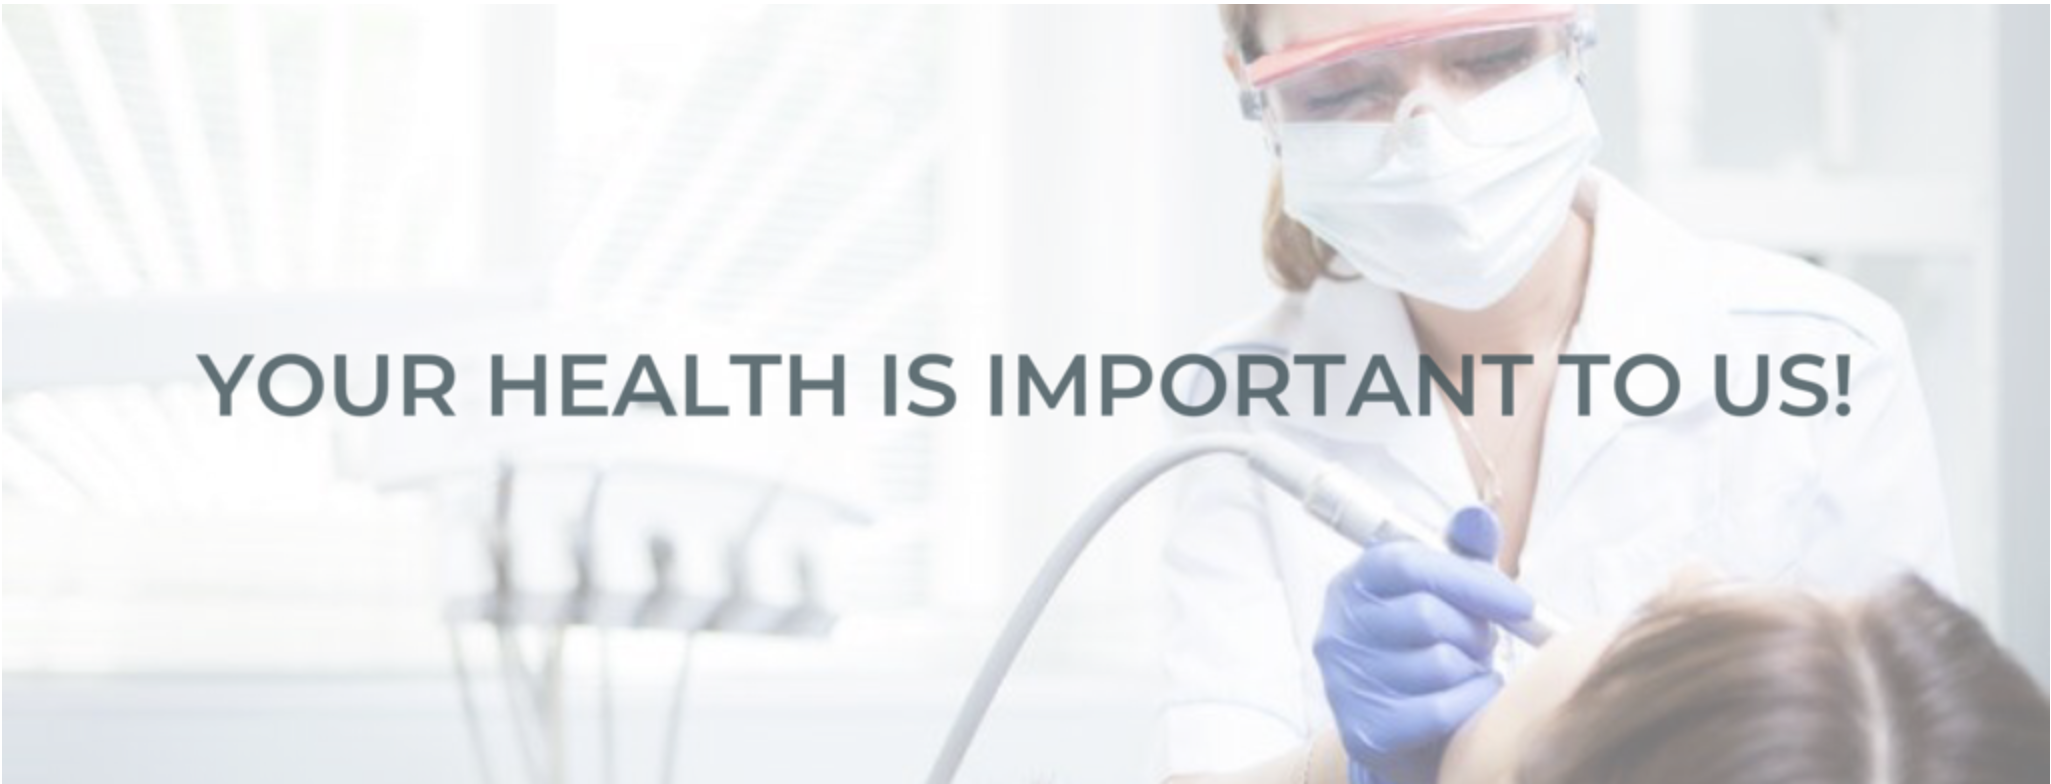 Your Health Is Important To Us